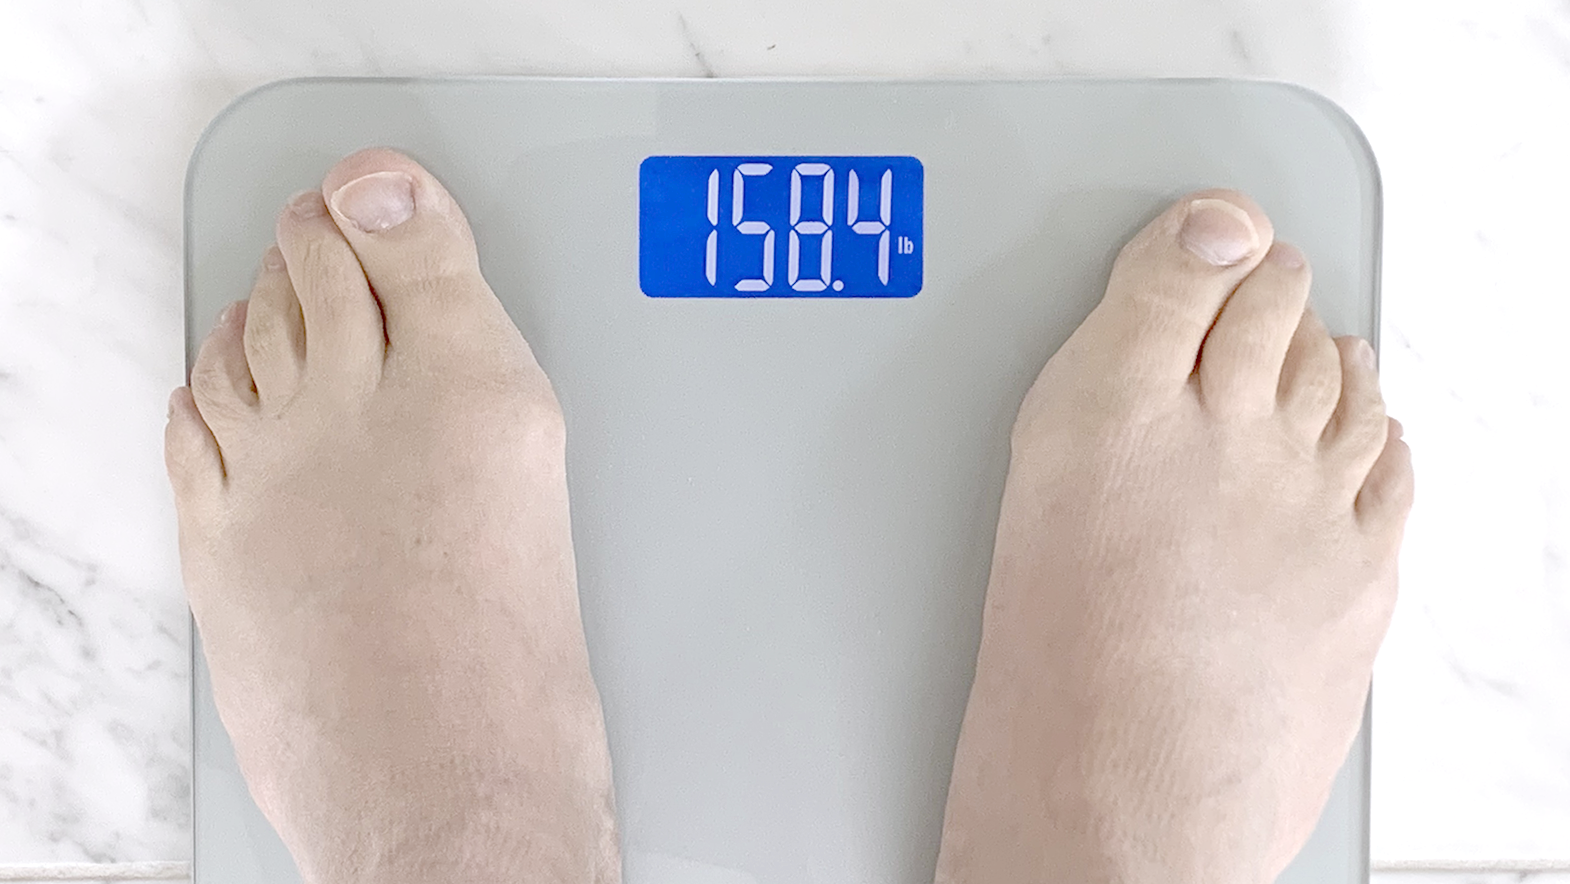 feet on a scale showing current weight